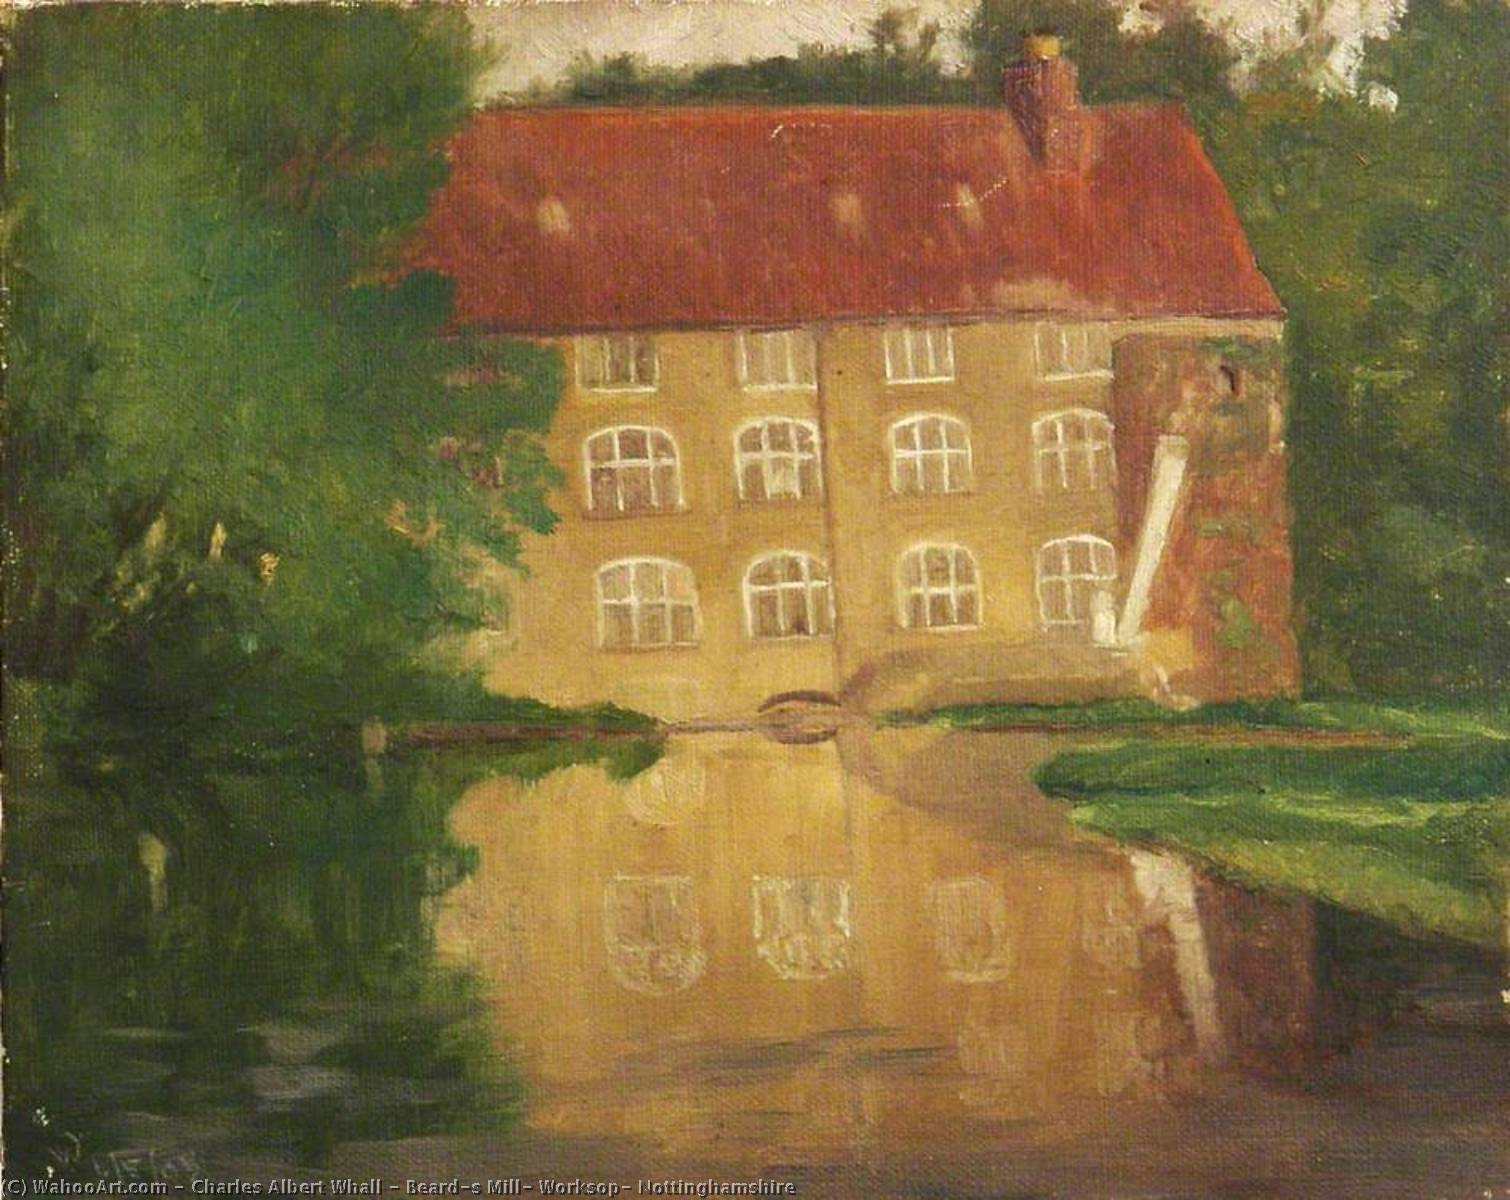 Beard's Mill, Worksop, Nottinghamshire, Oil On Canvas by Charles Albert Whall